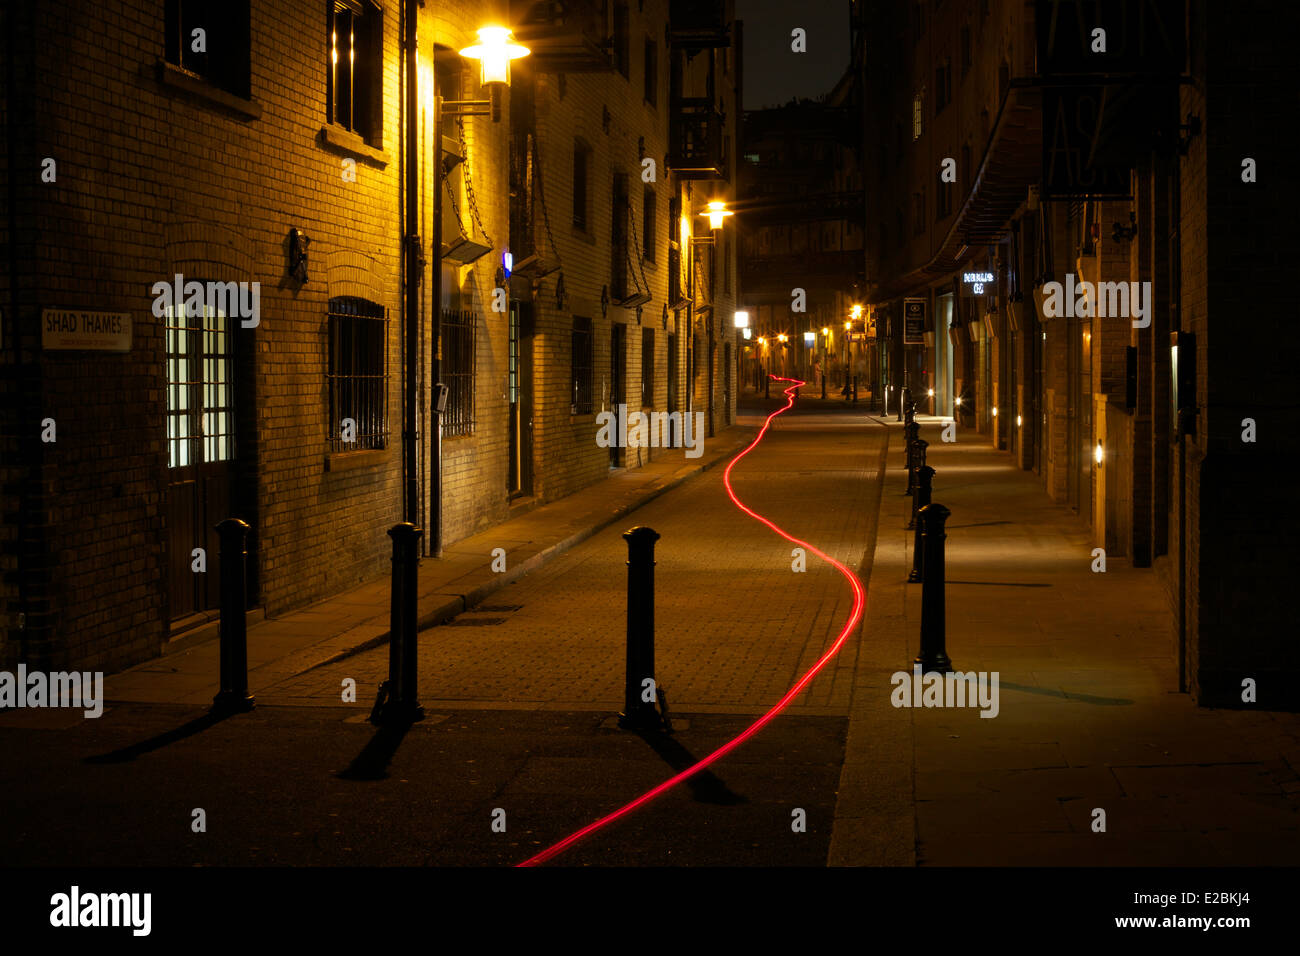 Shad Thames London at night with red travel line. - Stock Image